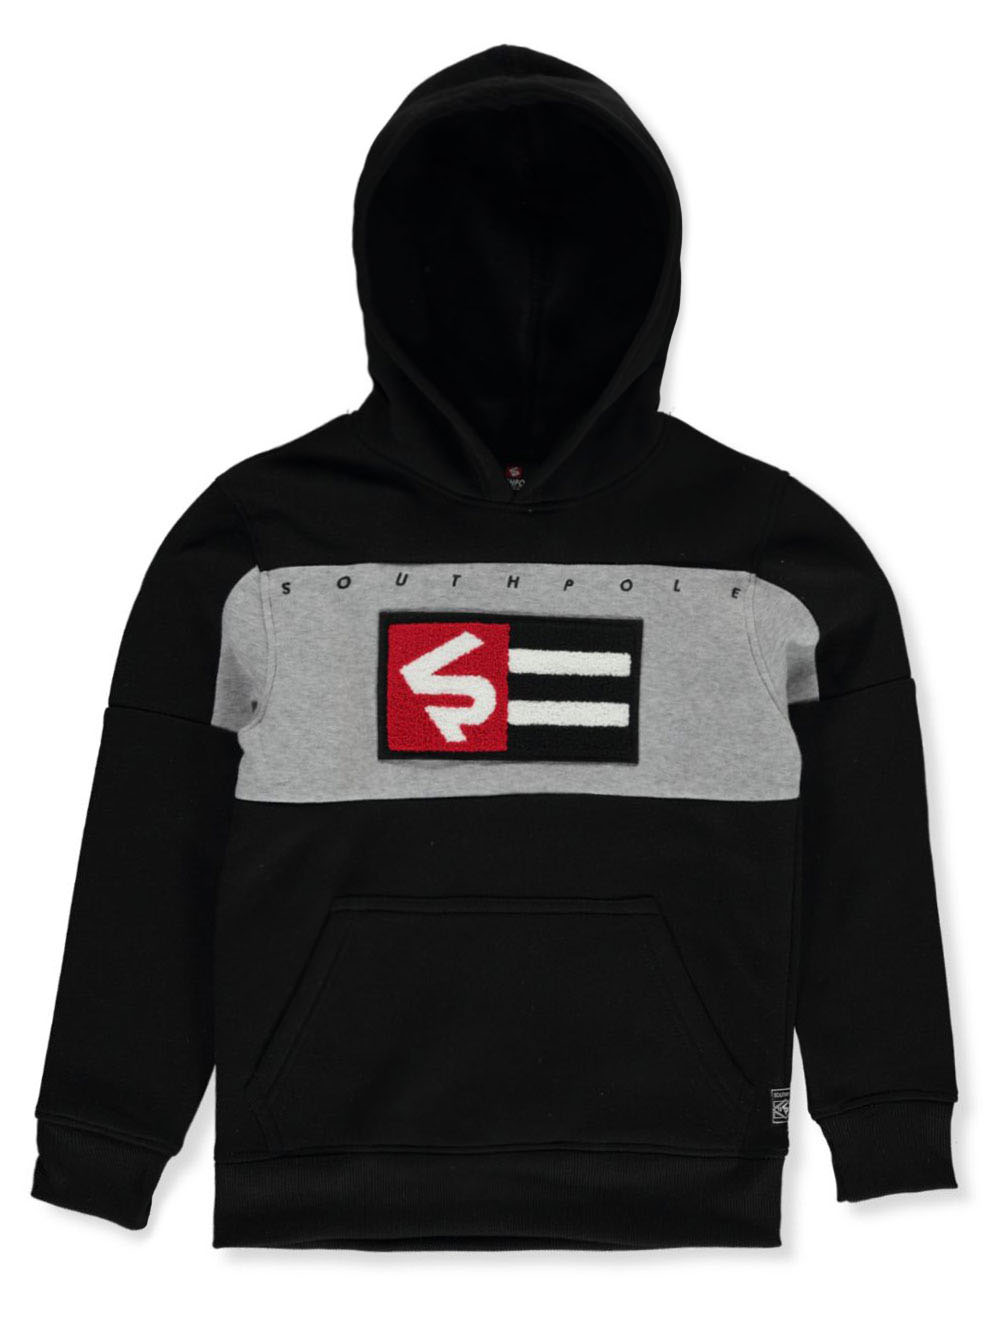 Size 8-10 Hoodies for Boys